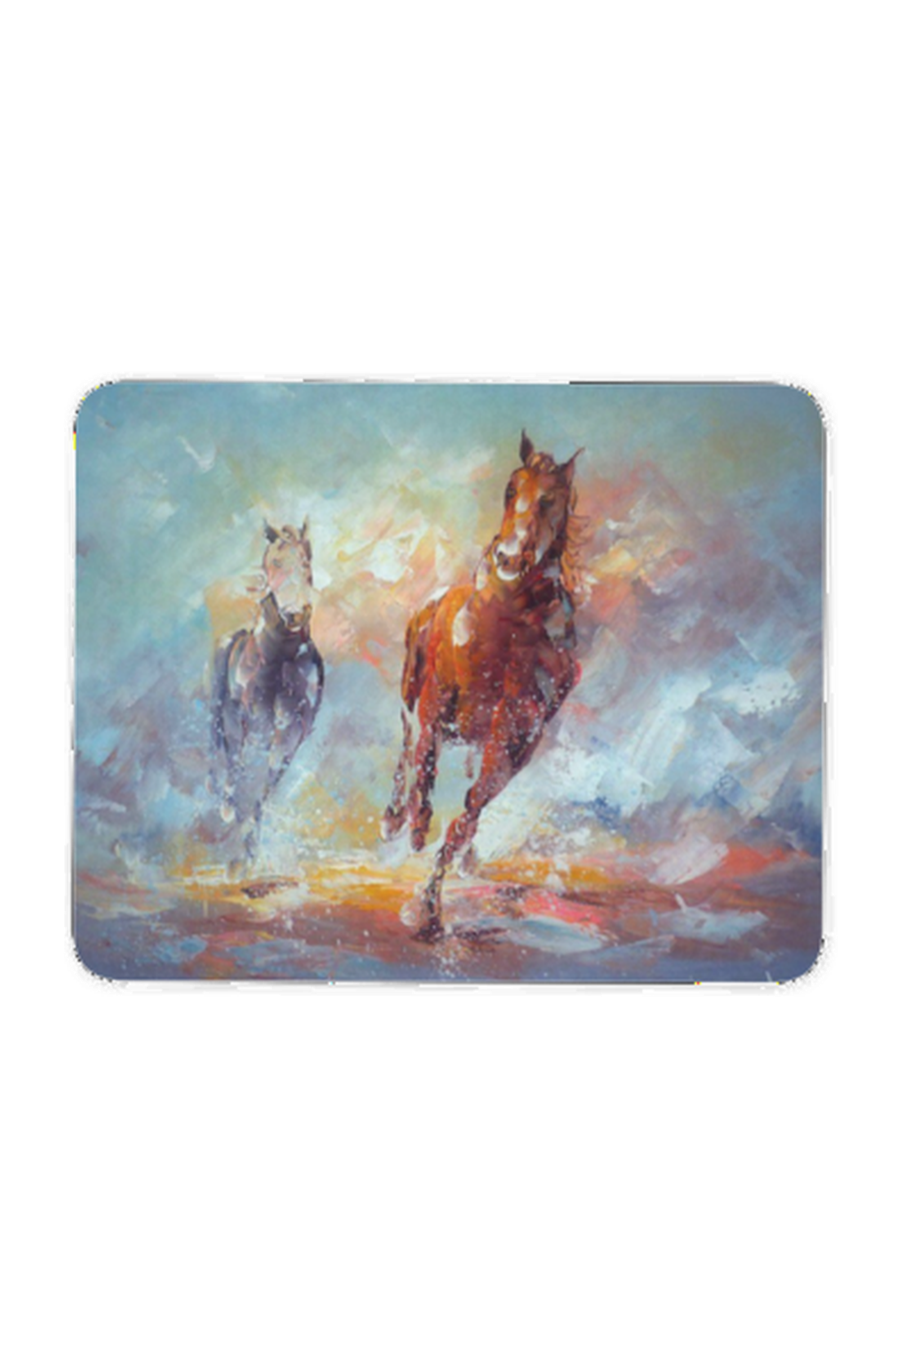 Running in the Rain - Mouse pad